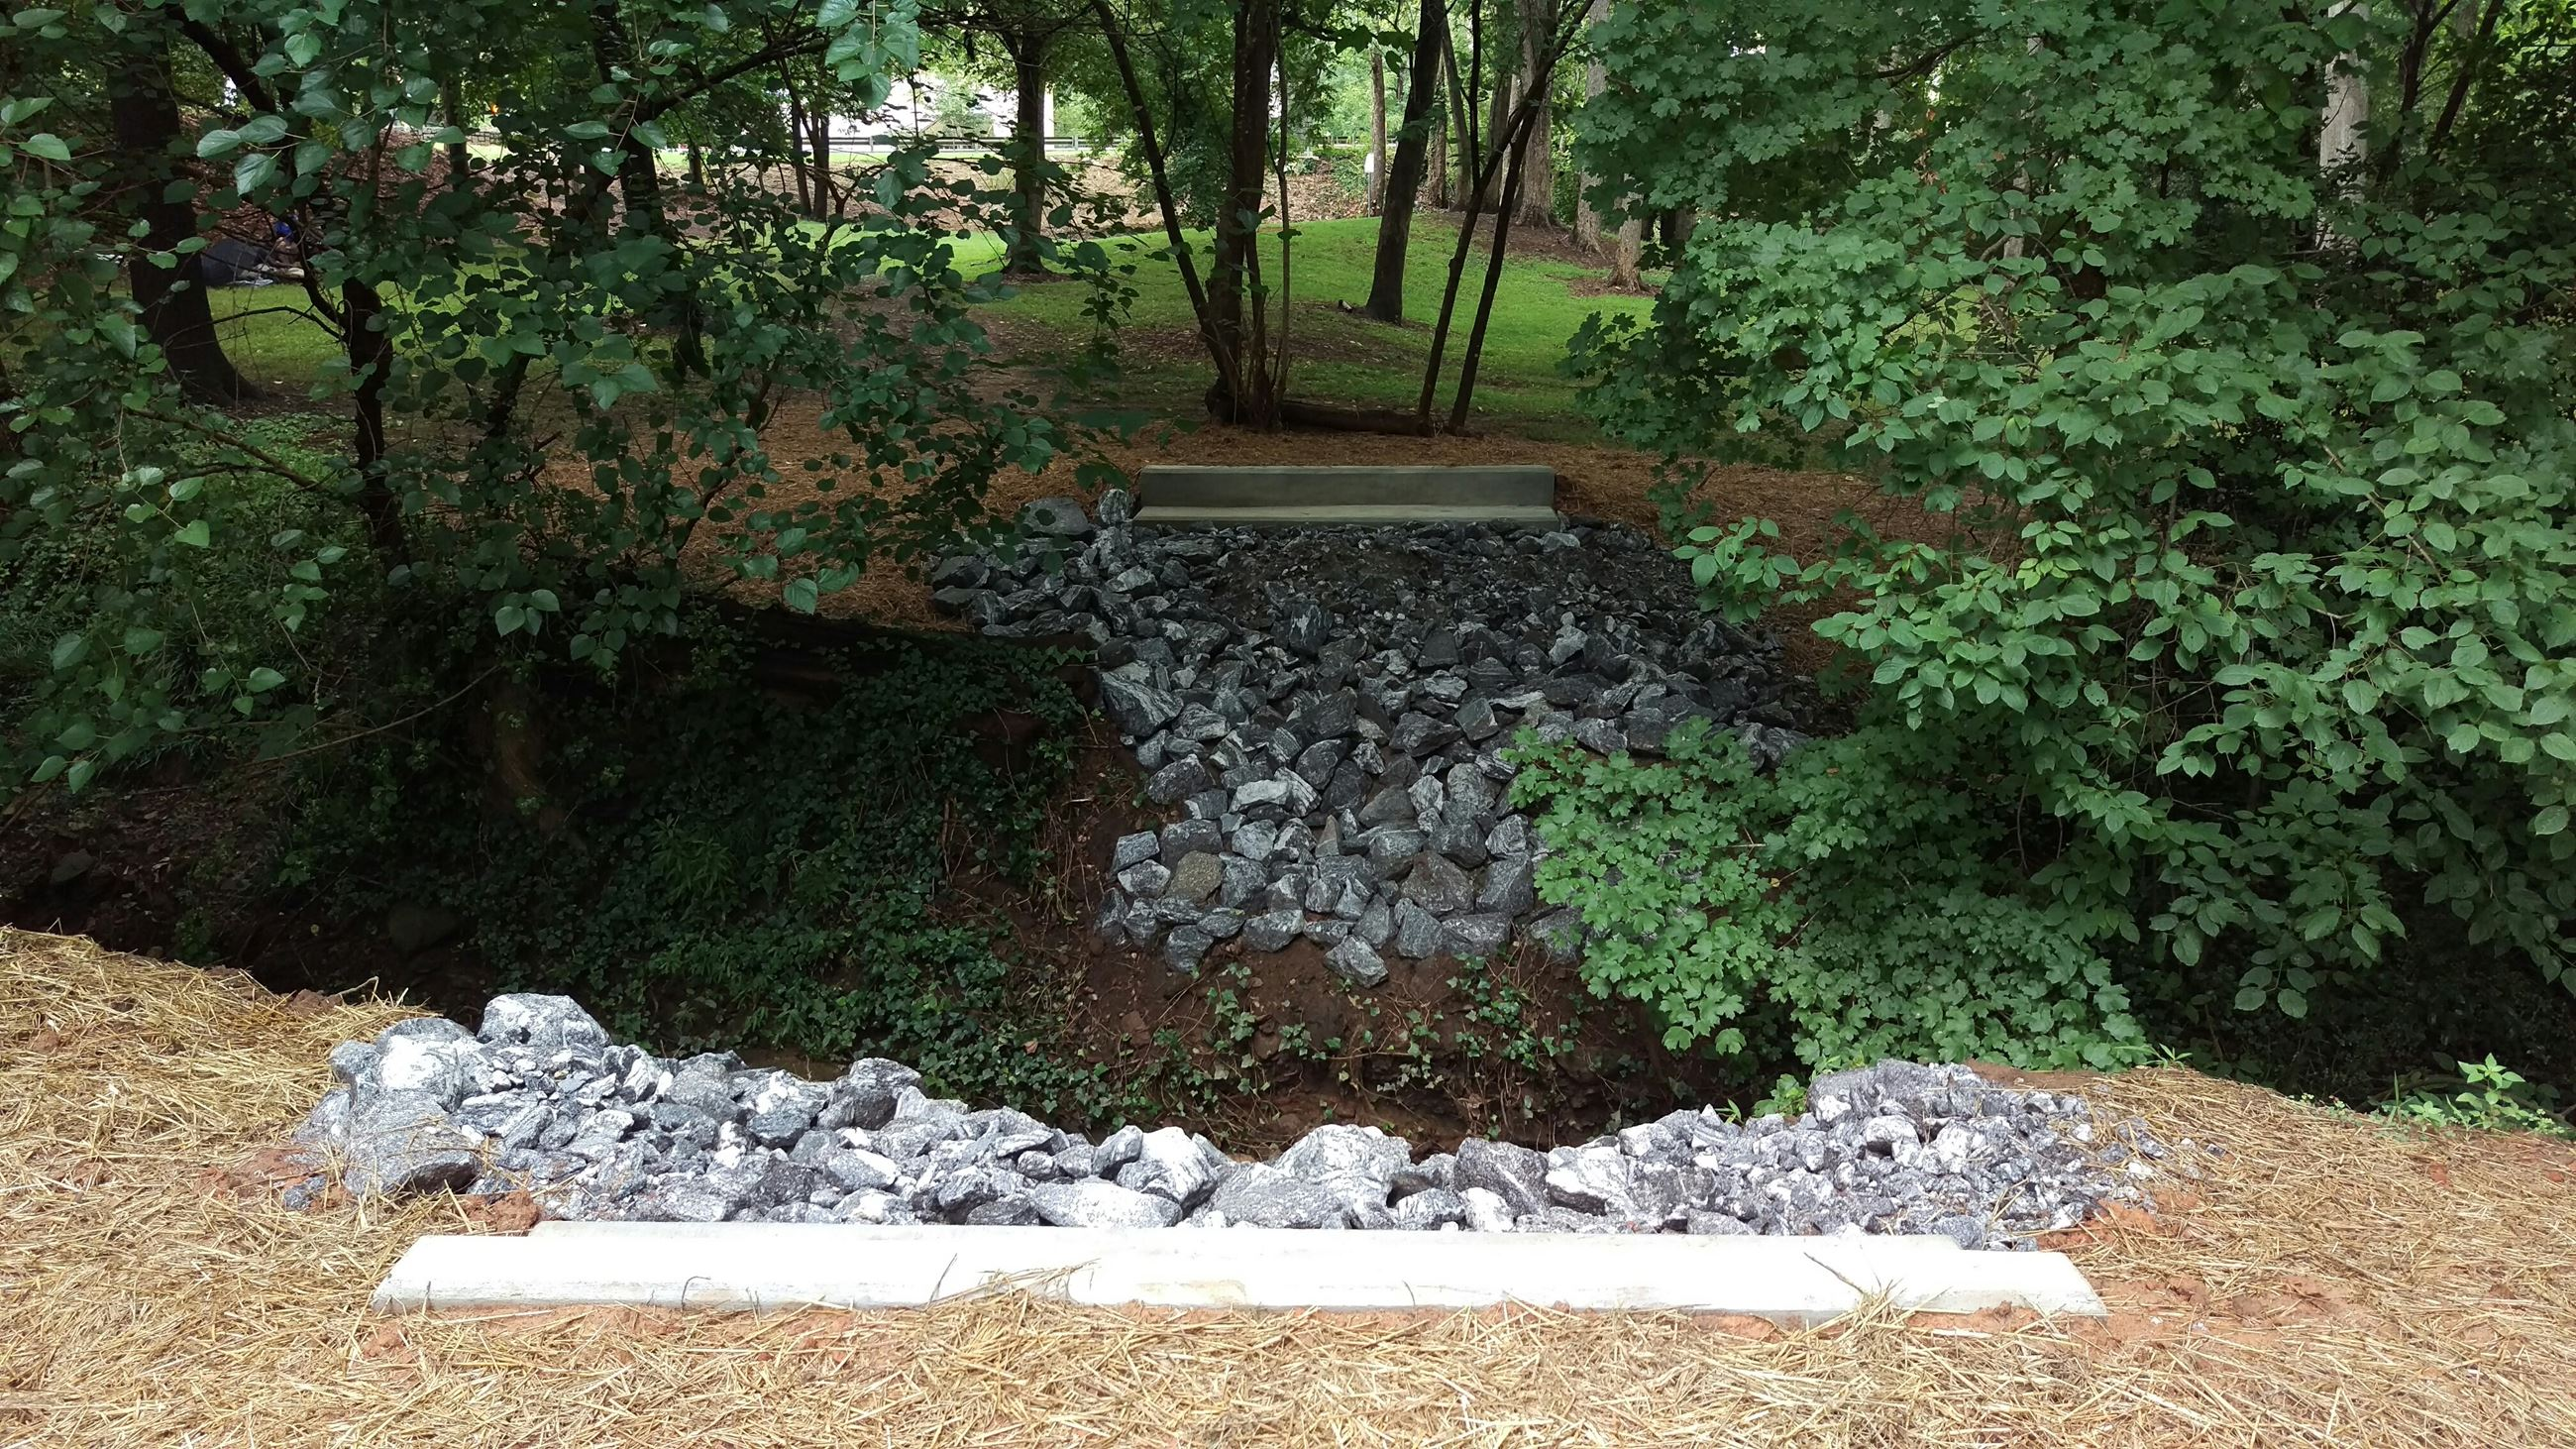 Photo of the completed abutments for the replacement pedestrian bridge at North Oconee River Park.